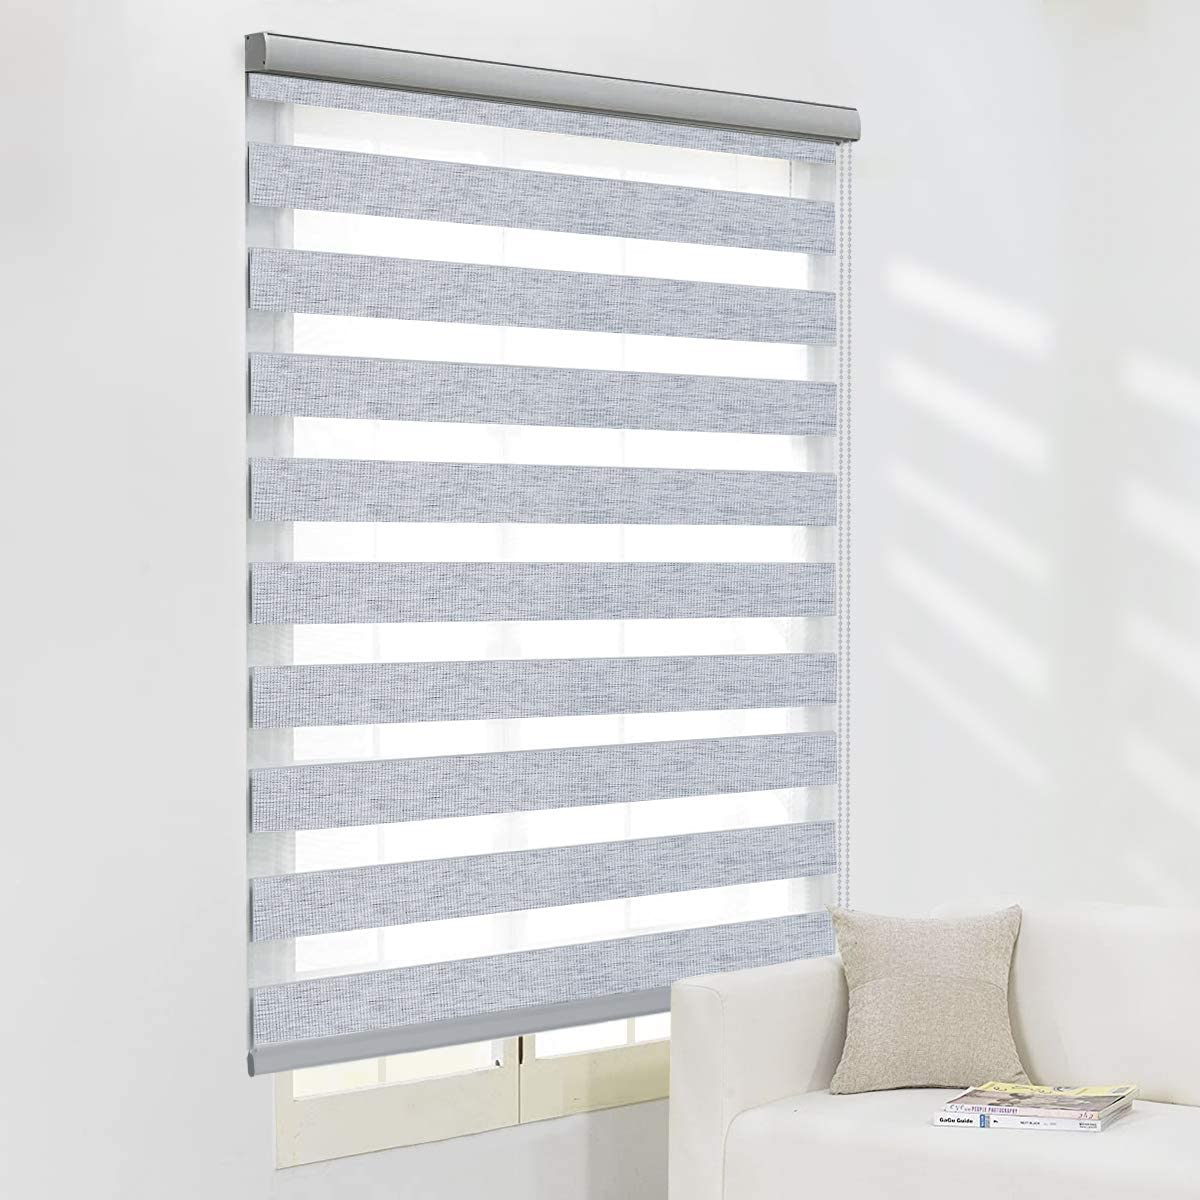 NICETOWM Zebra Roller Blind for Office Window, Sheer or Privacy Light Control, Day and Night Window Curtain (Maxium Height 72inch, Grey Color, Width 34 inch)